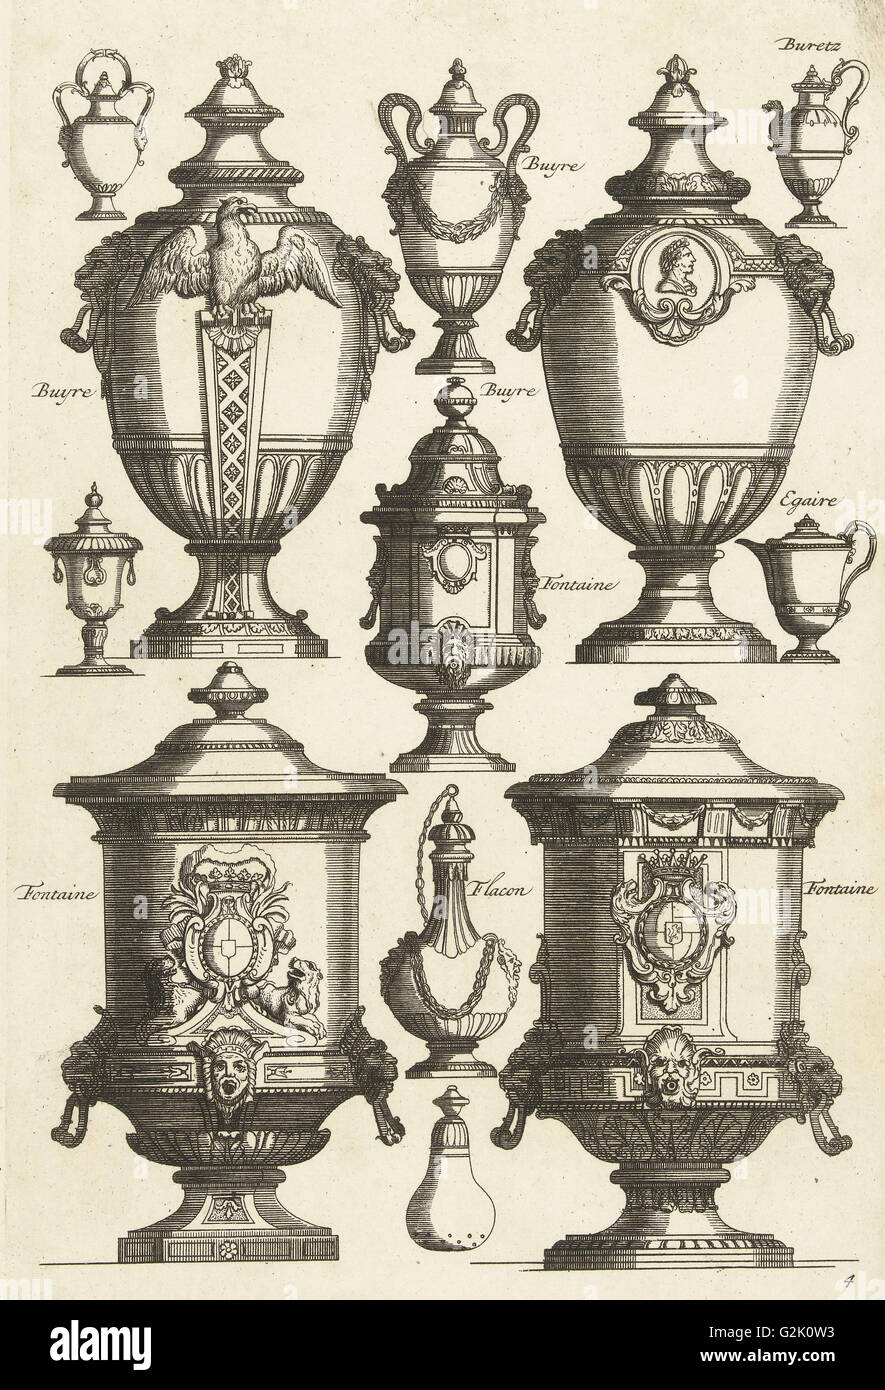 Twelve designs for goldsmiths, Daniël Marot (I), Anonymous, Anonymous, after 1703 - before 1800 - Stock Image